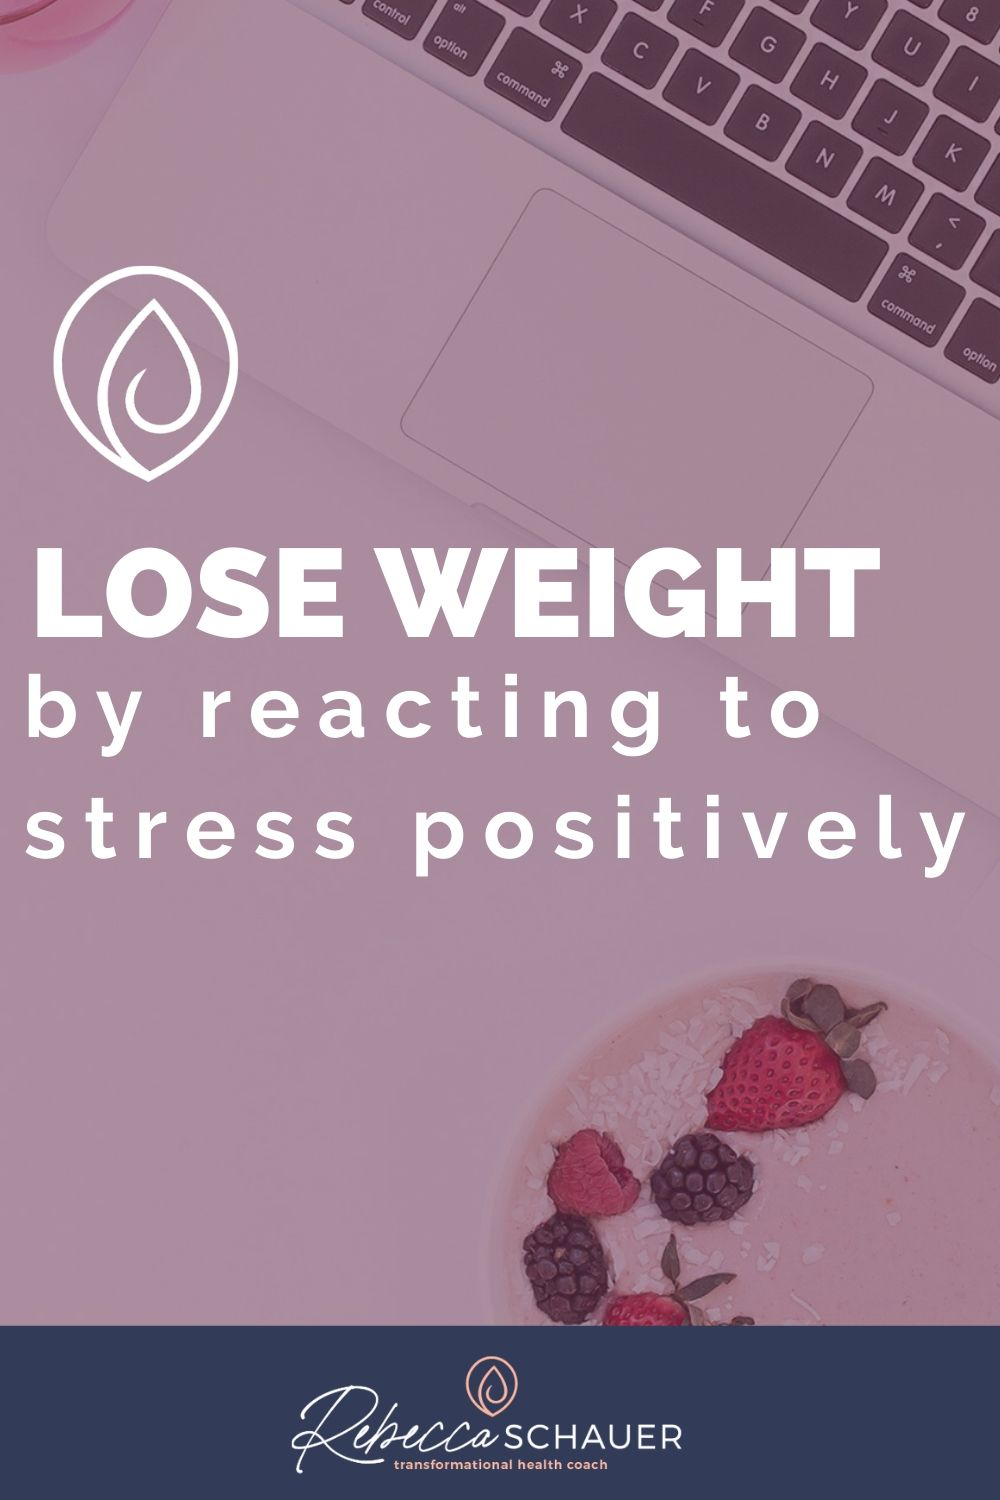 Chronic overeating and emotional struggles with our body and food trigger our stress response. Stress chemicals also make it much more difficult to manage our eating and weight in a healthy way. Rebecca Schauer, RDN Find Freedom with Food